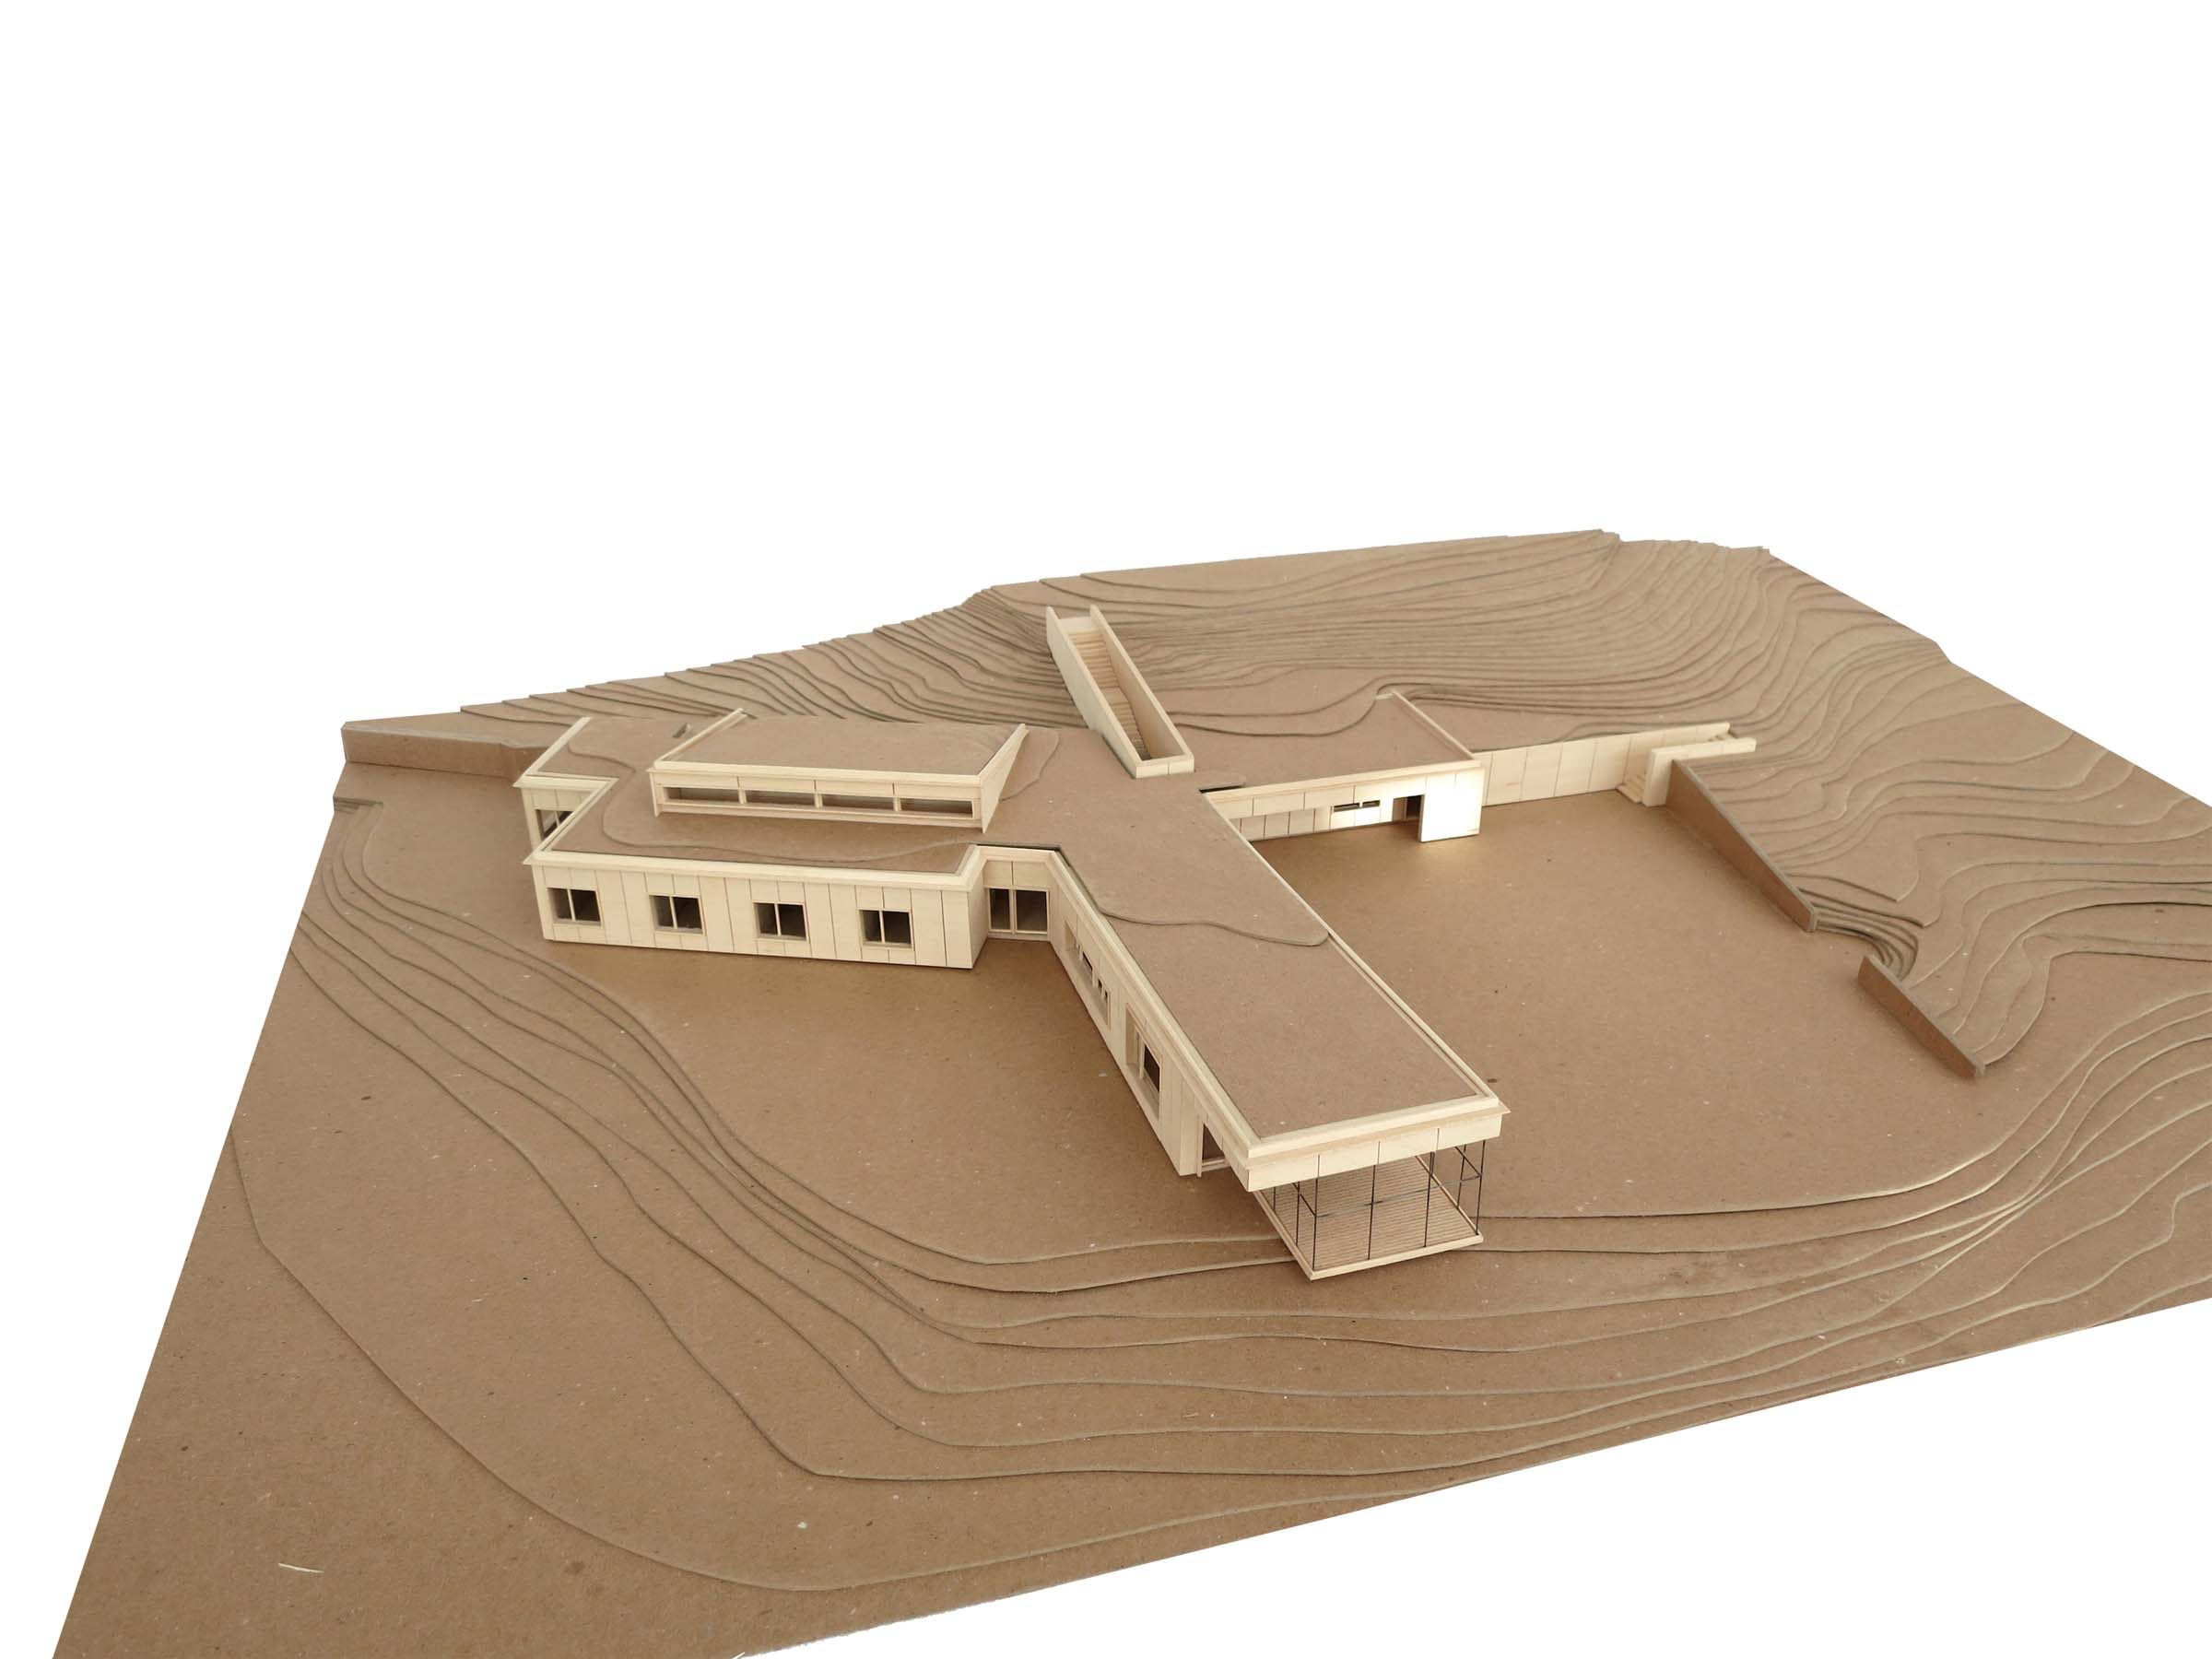 Guilford Artists' Residence - aerial view model